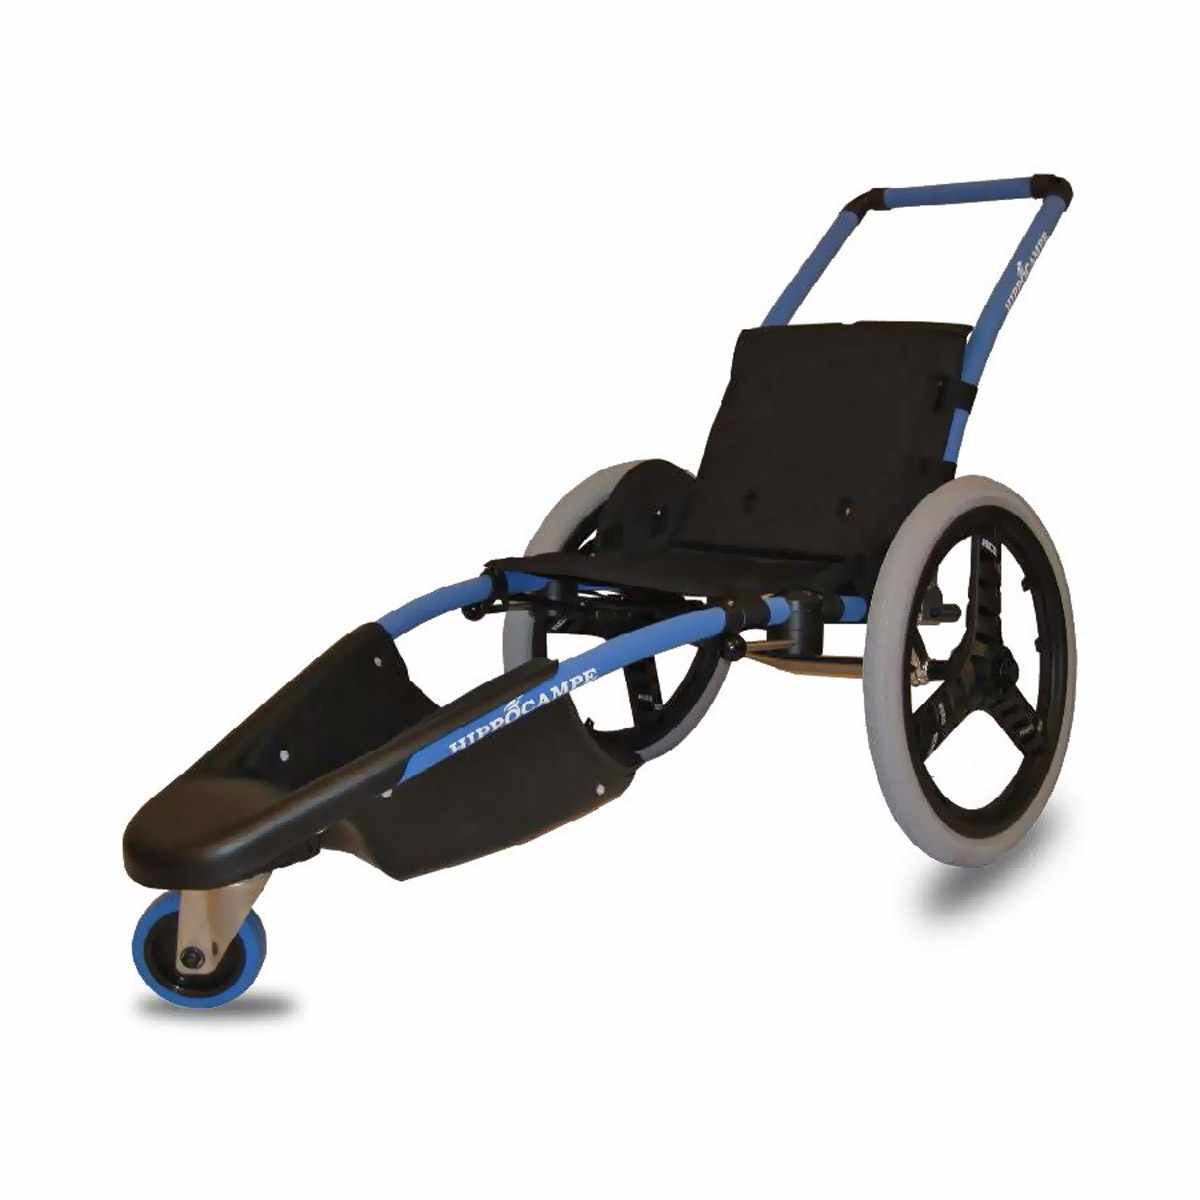 Vipamat Hippocampe swimming pool access wheelchair